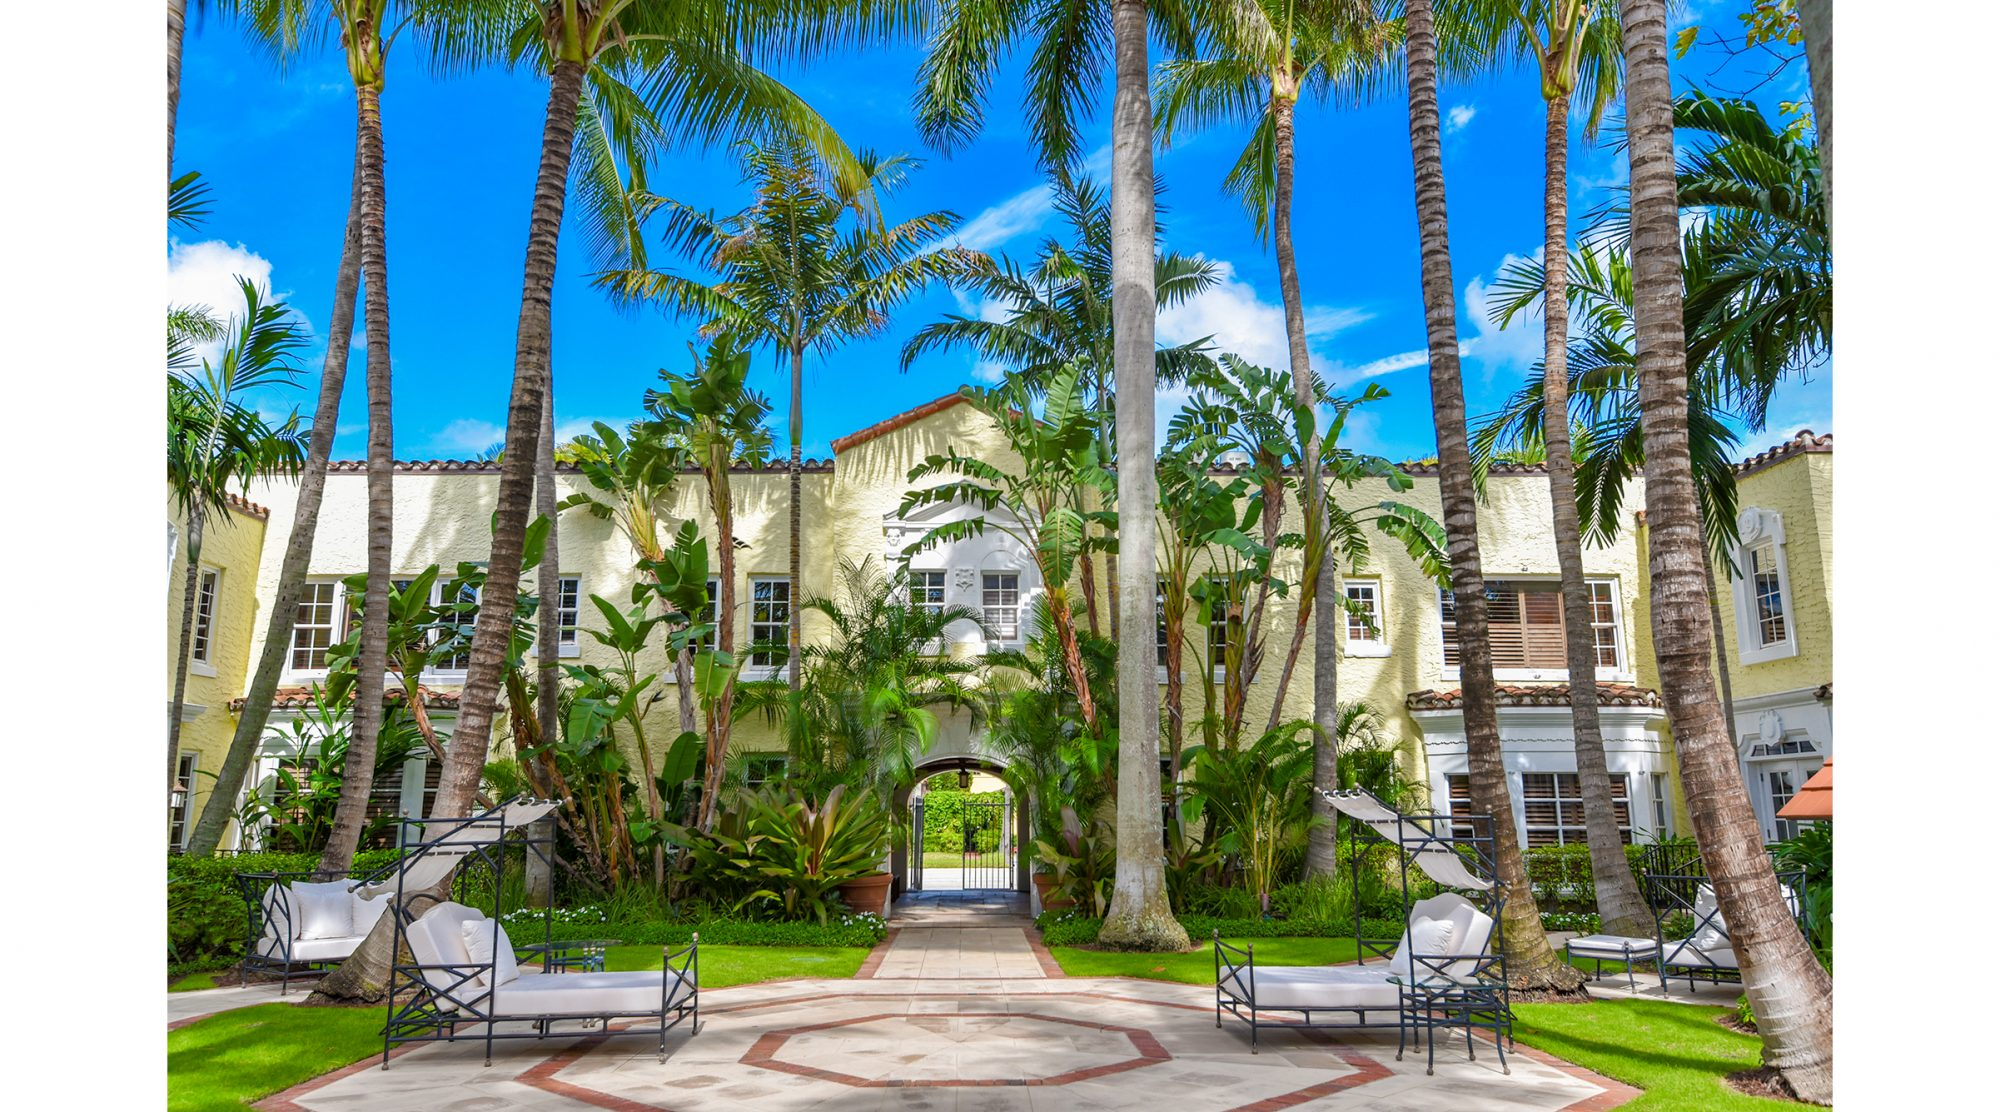 The Brazilian Court Hotel sits just a few blocks from the tawny sands of Palm Beach, but beautifully designed spaces like the window-wrapped conservatory, the elegant ballroom, and the iconic Candela-designed courtyard with its lush tropical canopy and famous wishing well may inspire you to host all your events on the intimate, impeccable property. This 90-year-old Palm Beach gem has played host to hundreds of storybook weddings over the years, so they know a thing or two about making your night unforgettable.